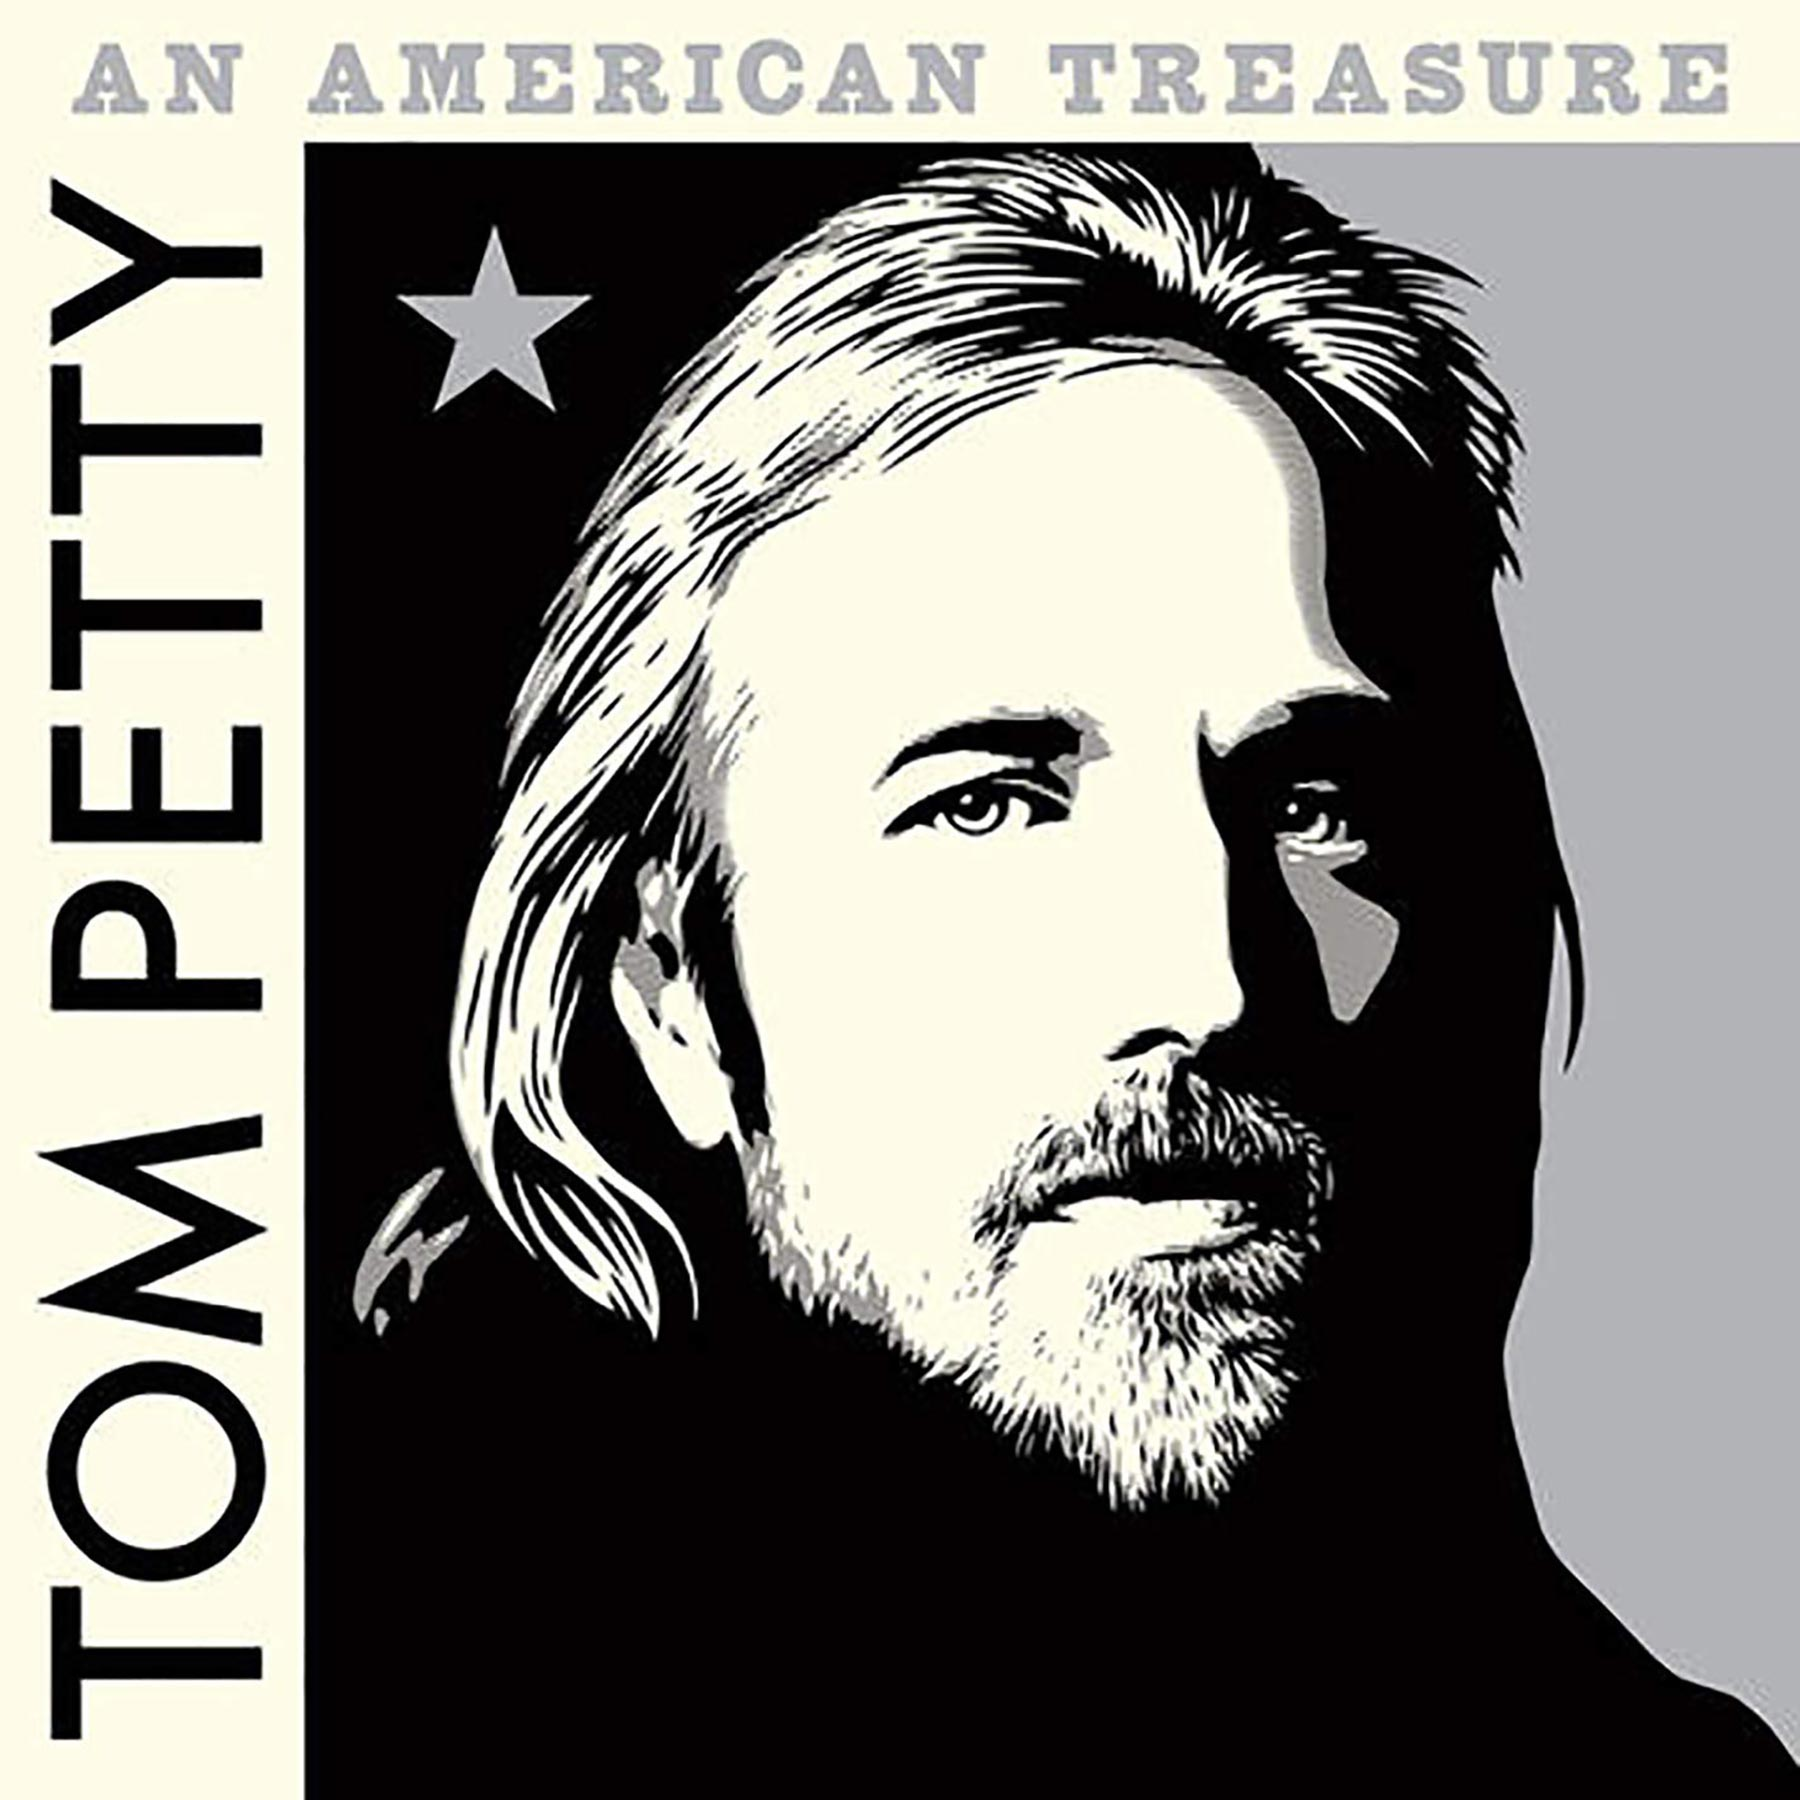 Tom Petty, An American Treasure: Deluxe EditionCR: Reprise